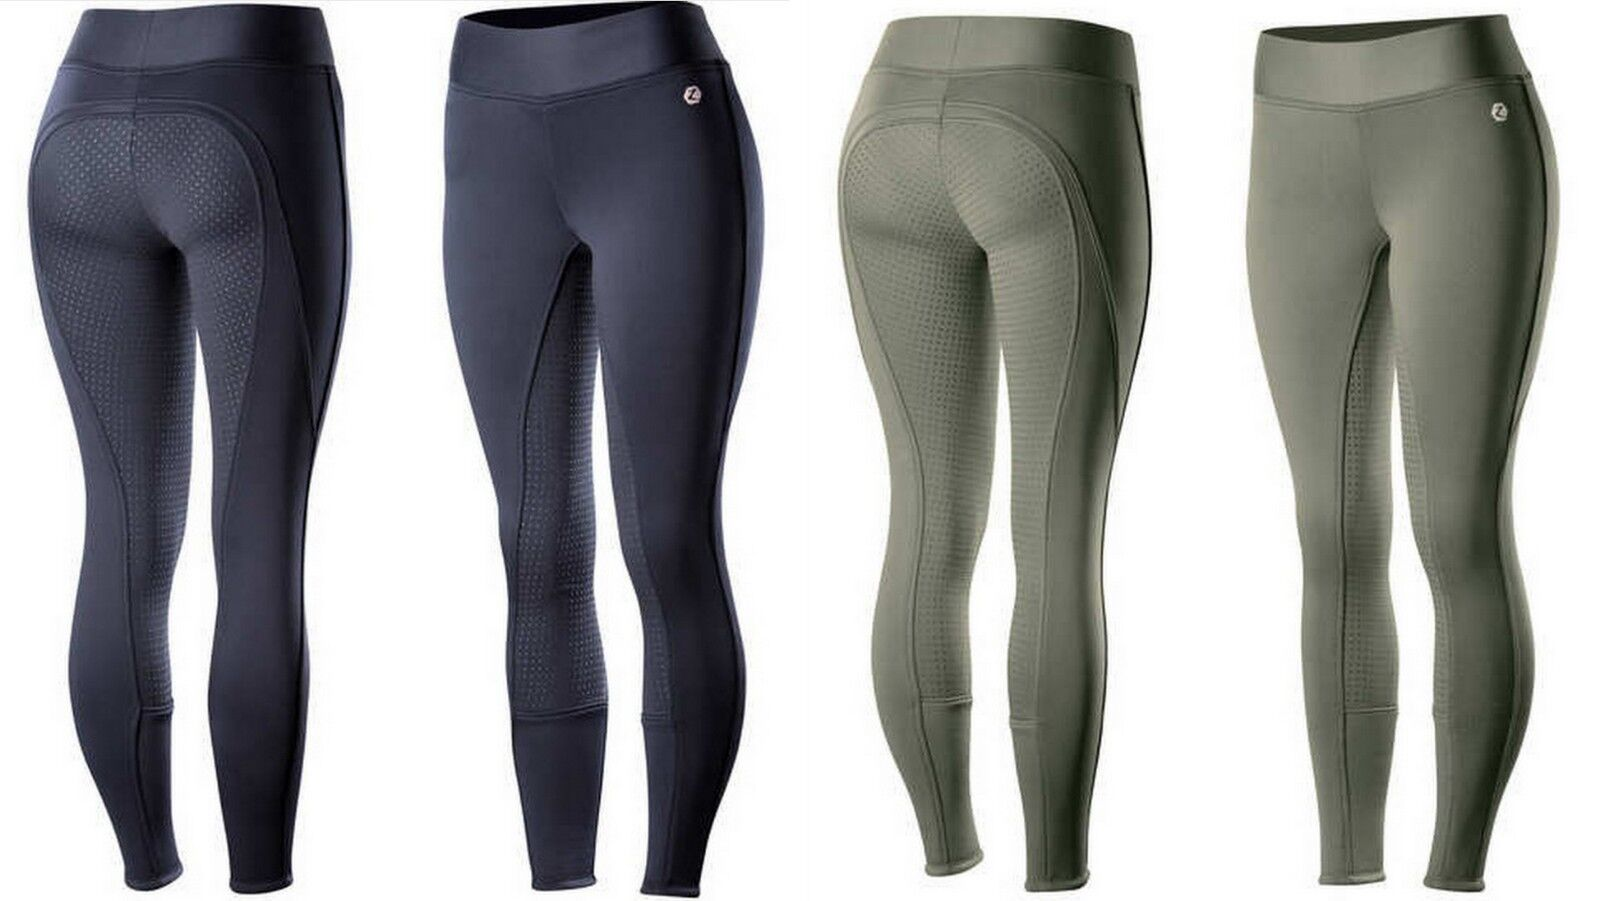 Horze FULL SEAT Active Women's Tights Sizes 24-32   online at best price